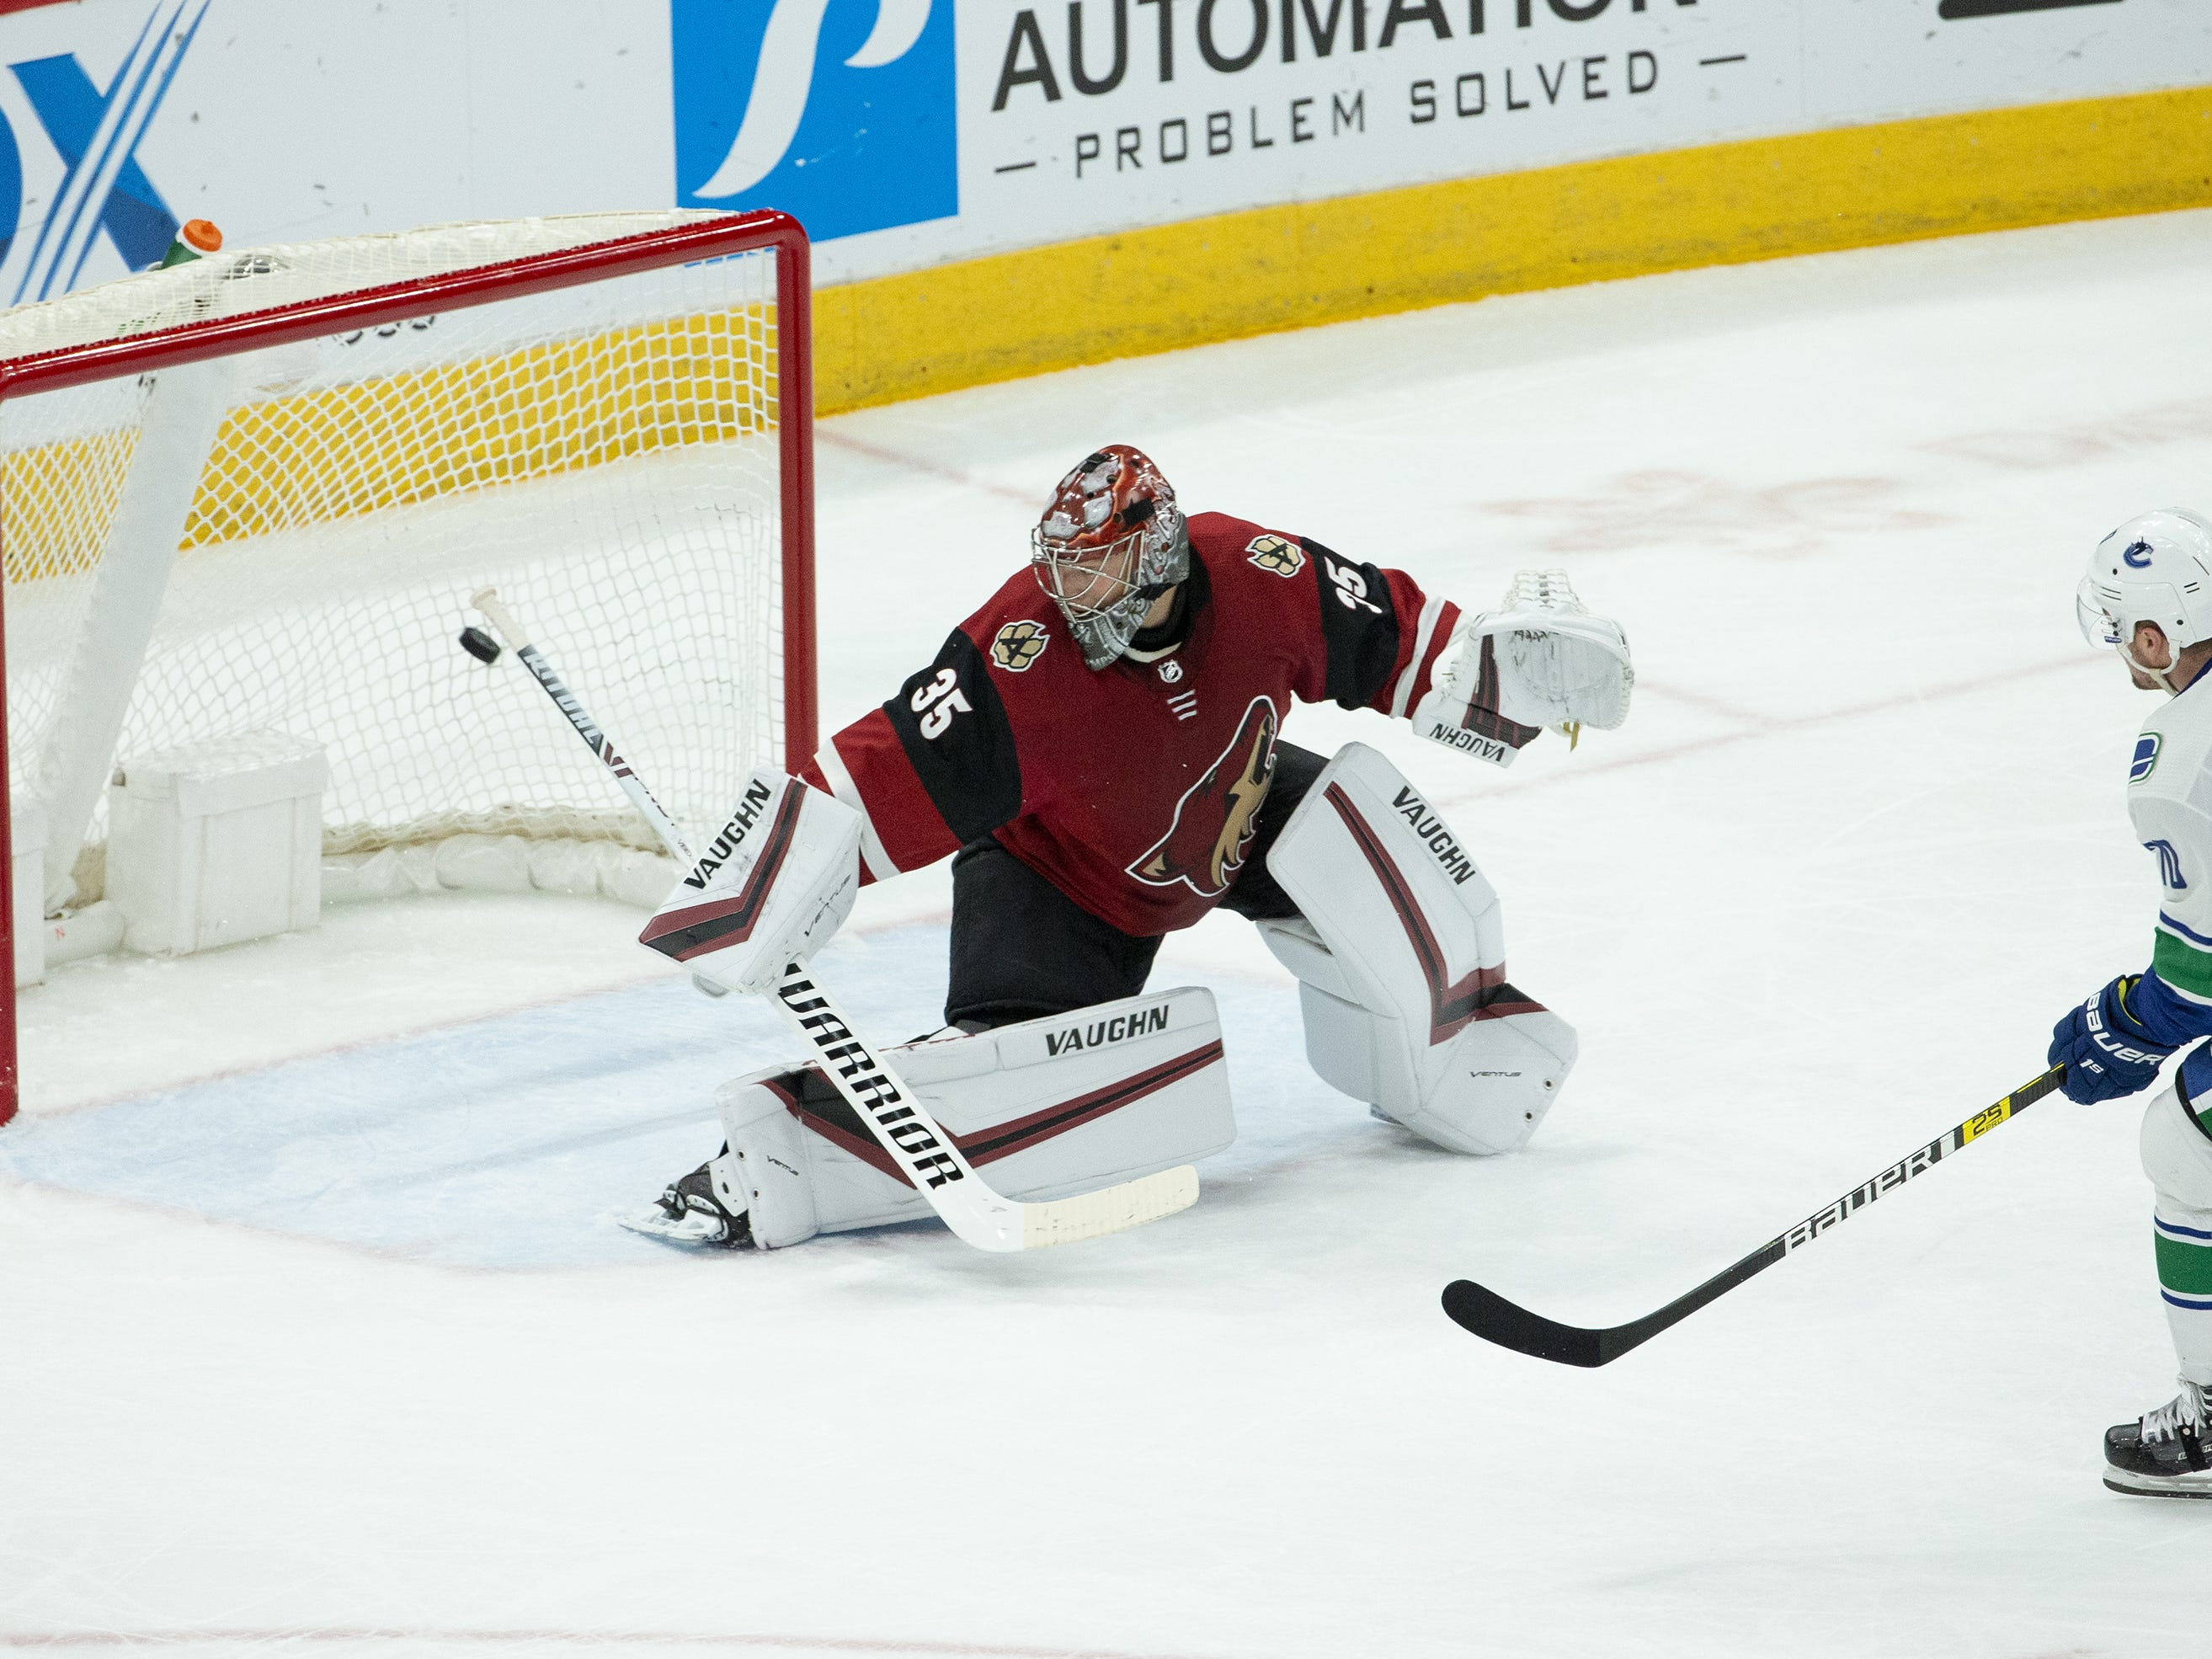 Arizona Coyotes goaltender Darcy Kuemper (35) can't stop the goal by Vancouver Canucks left wing Tanner Pearson (70) during a NHL game at Gila River Arena in Glendale on February 28.